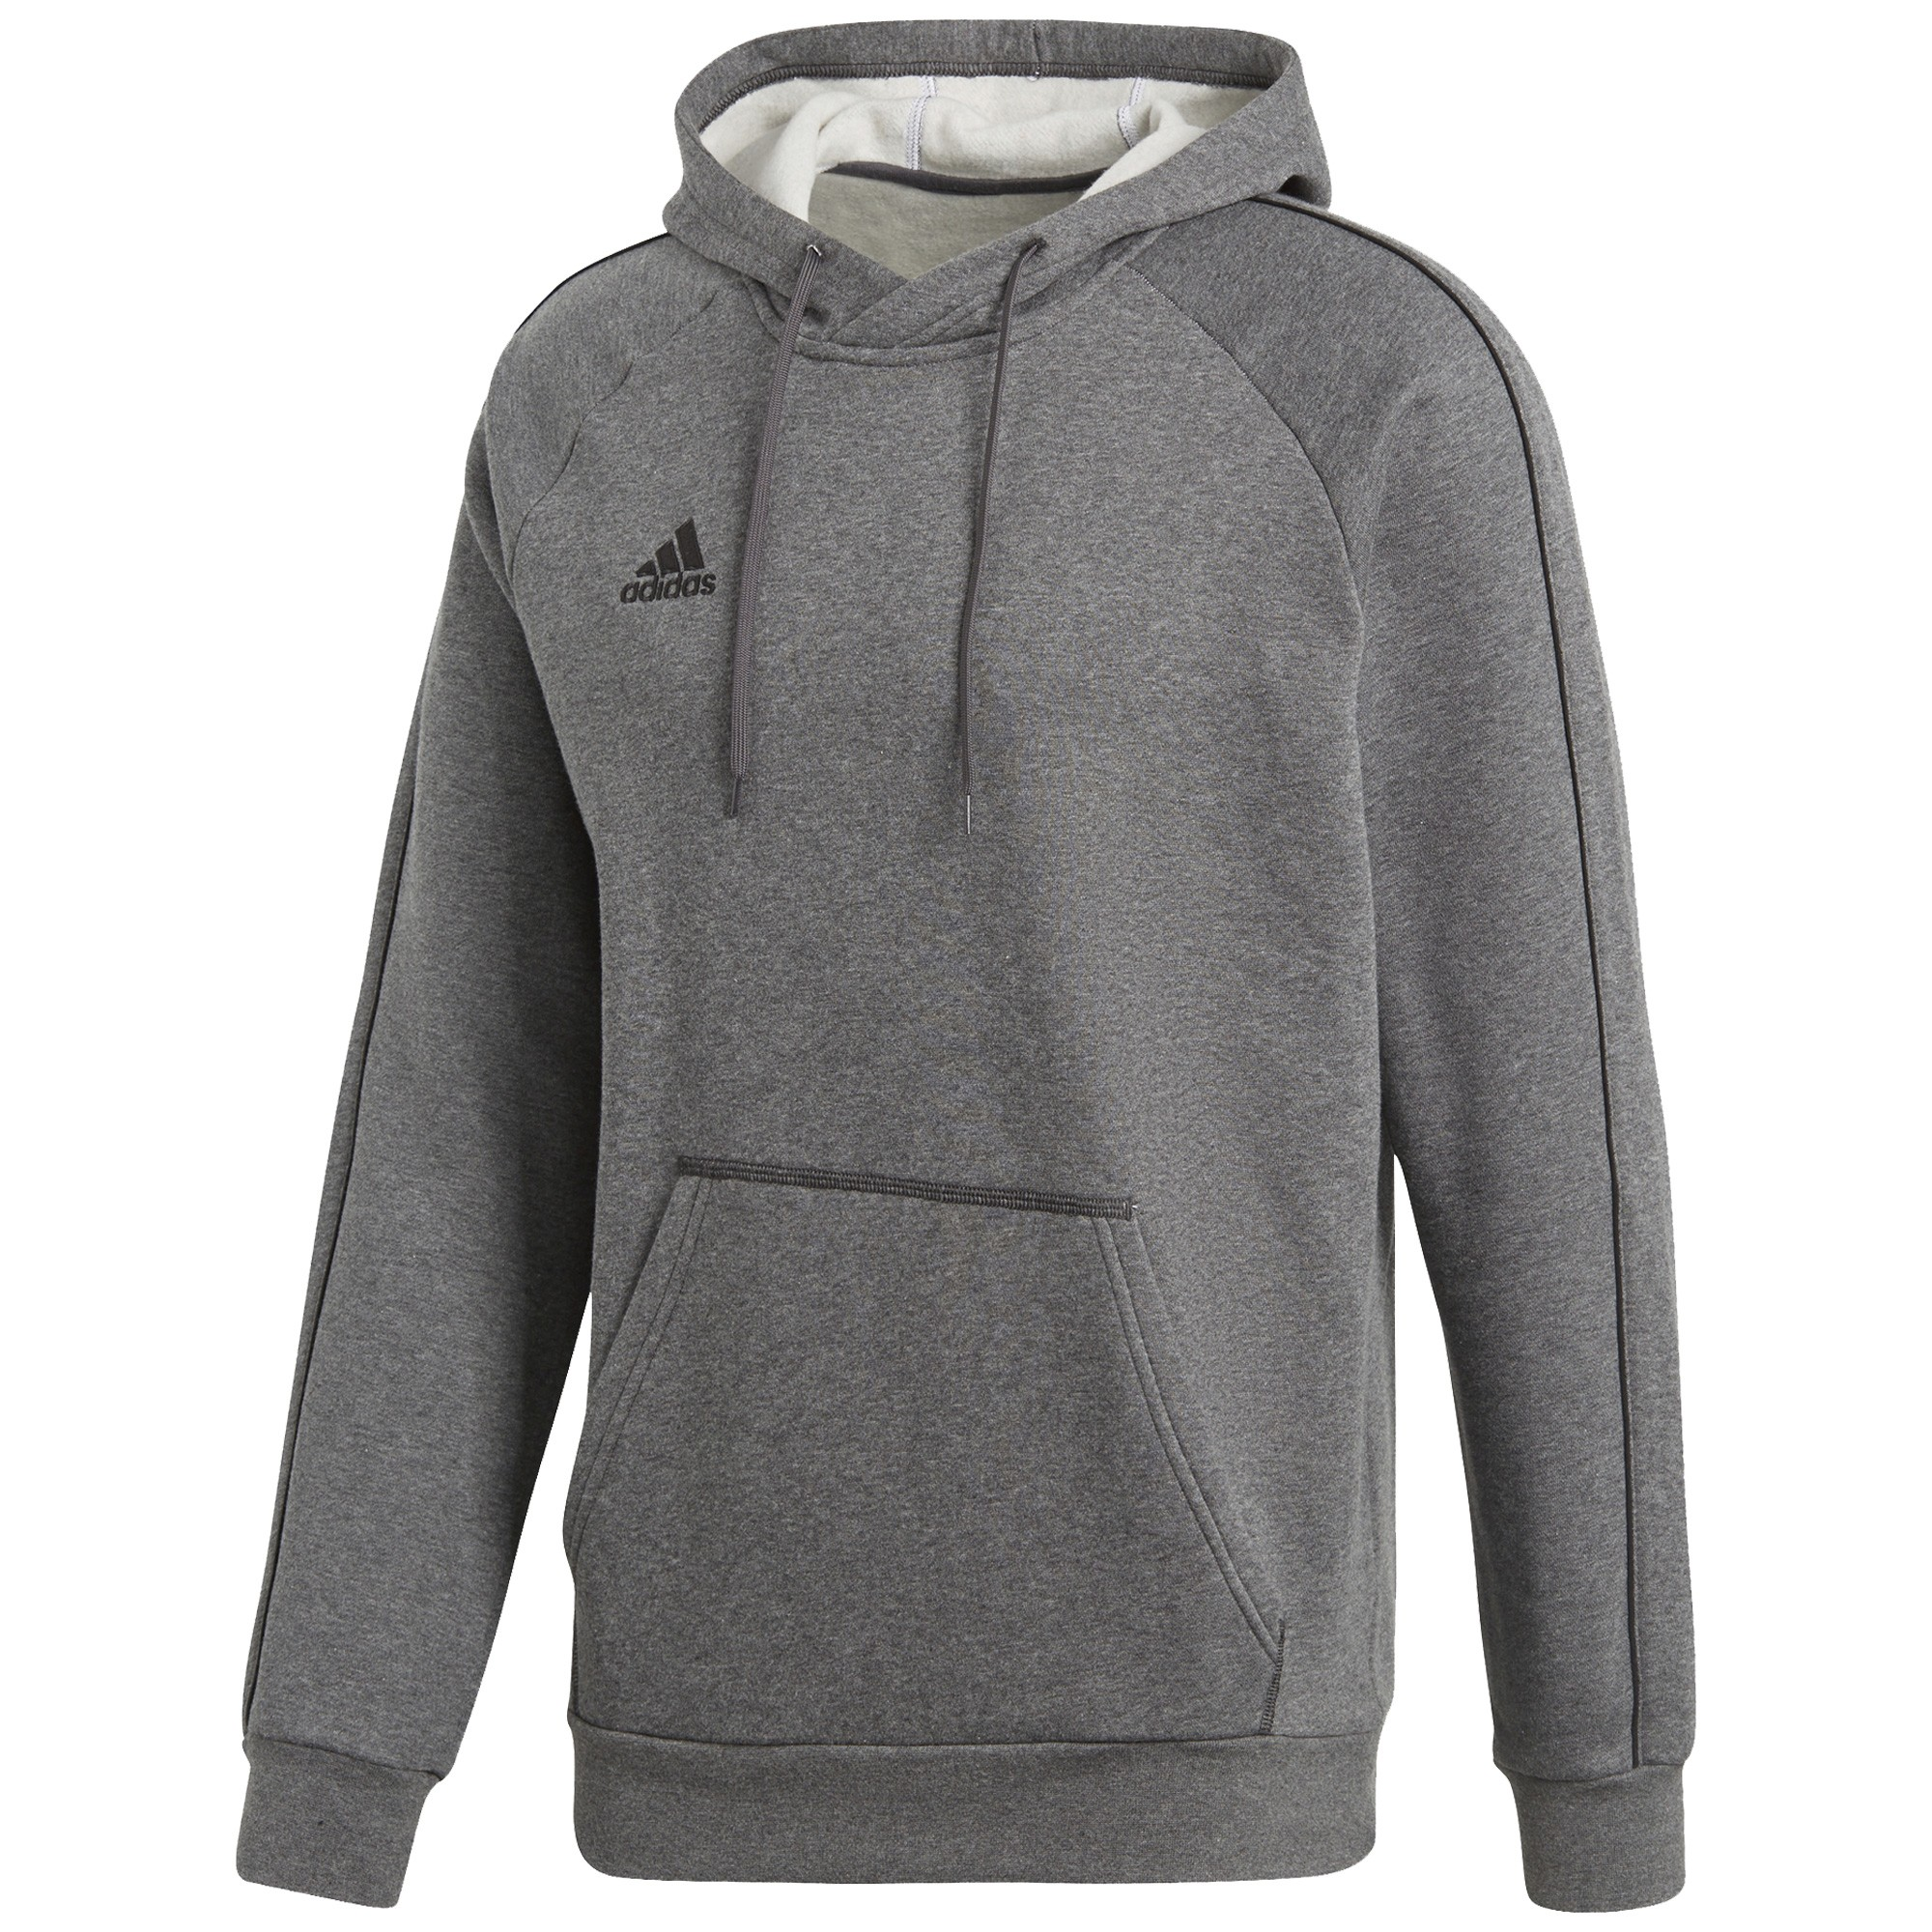 sweat shirt adidas avec capuche